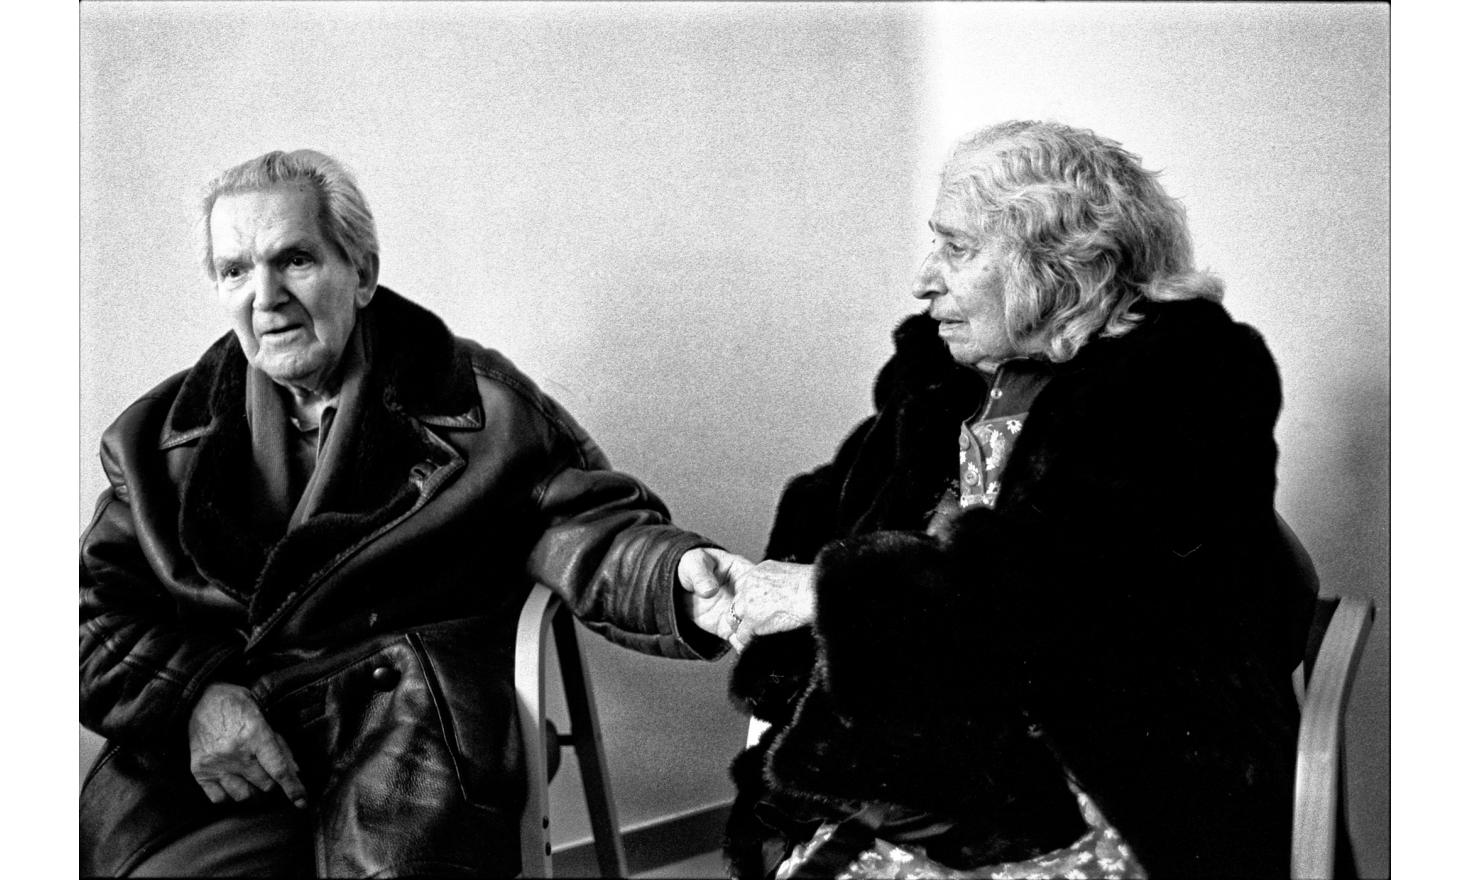 My father is very tired. I try to convince him to put my mother in a nursing home. During the interview with a doctor, my mother seems to realize that something serious is going on. She takes his hand. Paris february 2003.